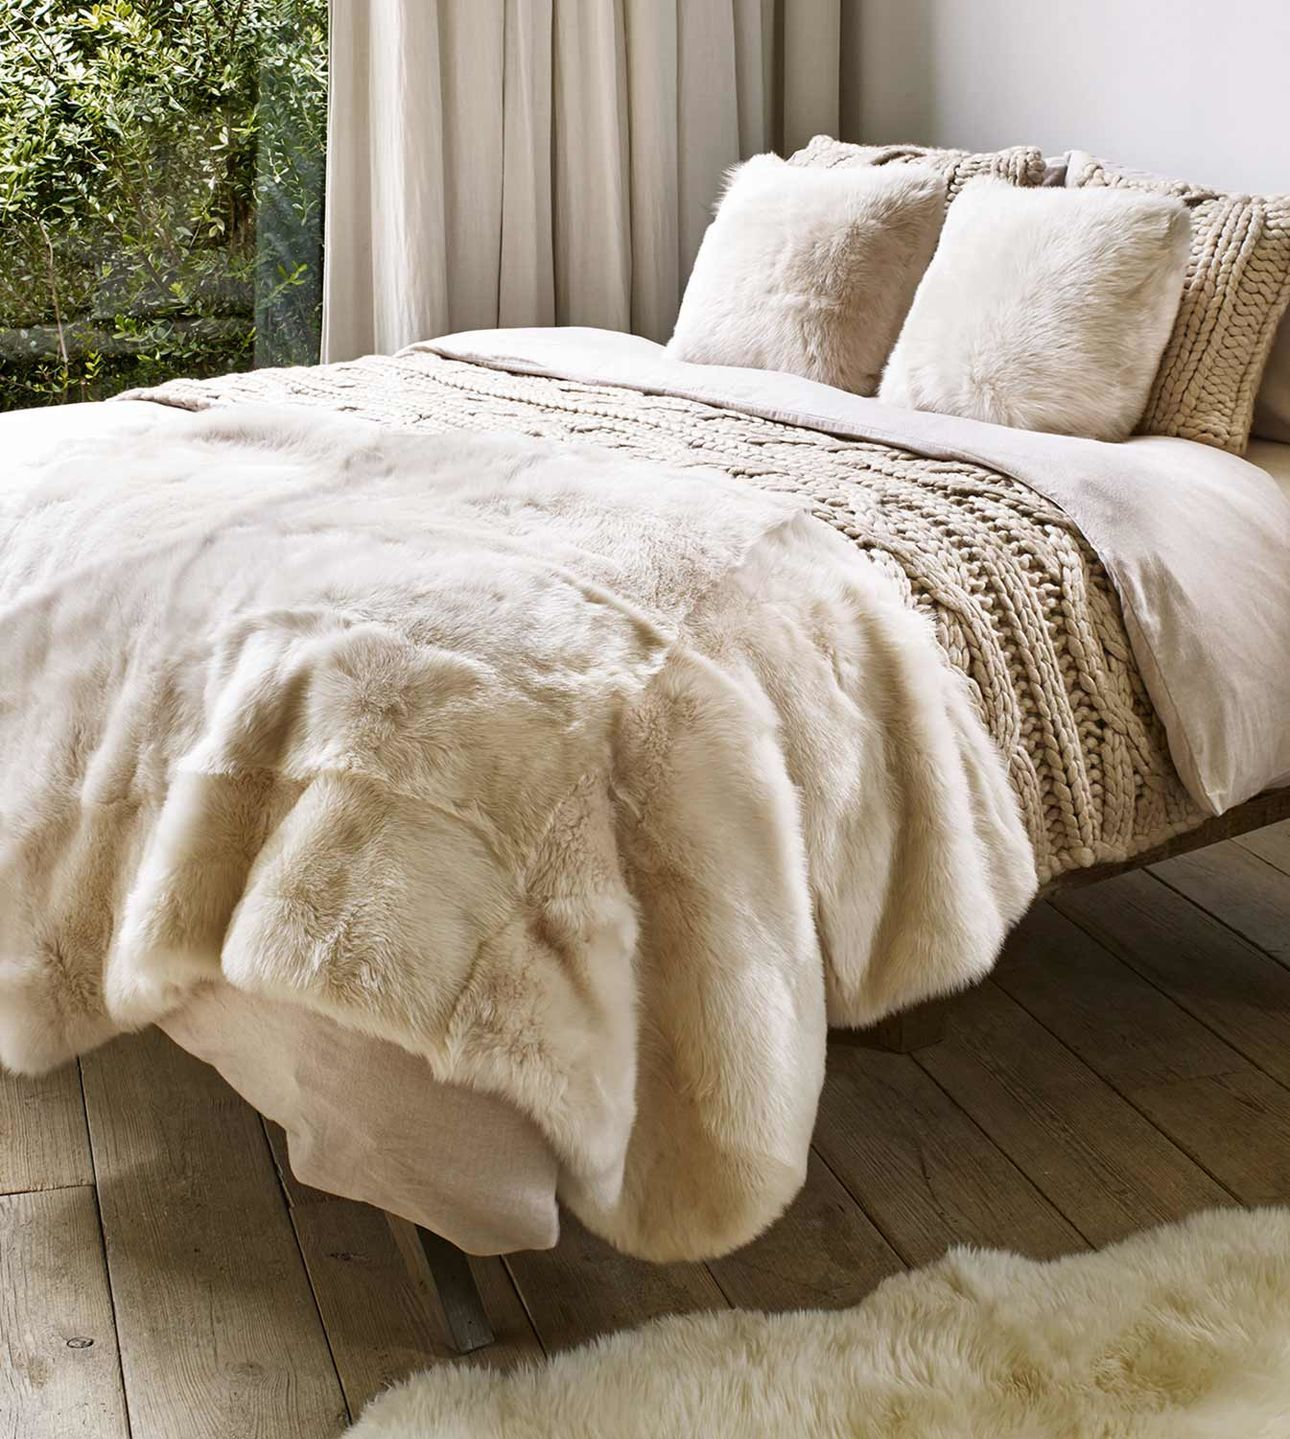 Toscana Bed Blanket Ugg Us Decor Inspiration